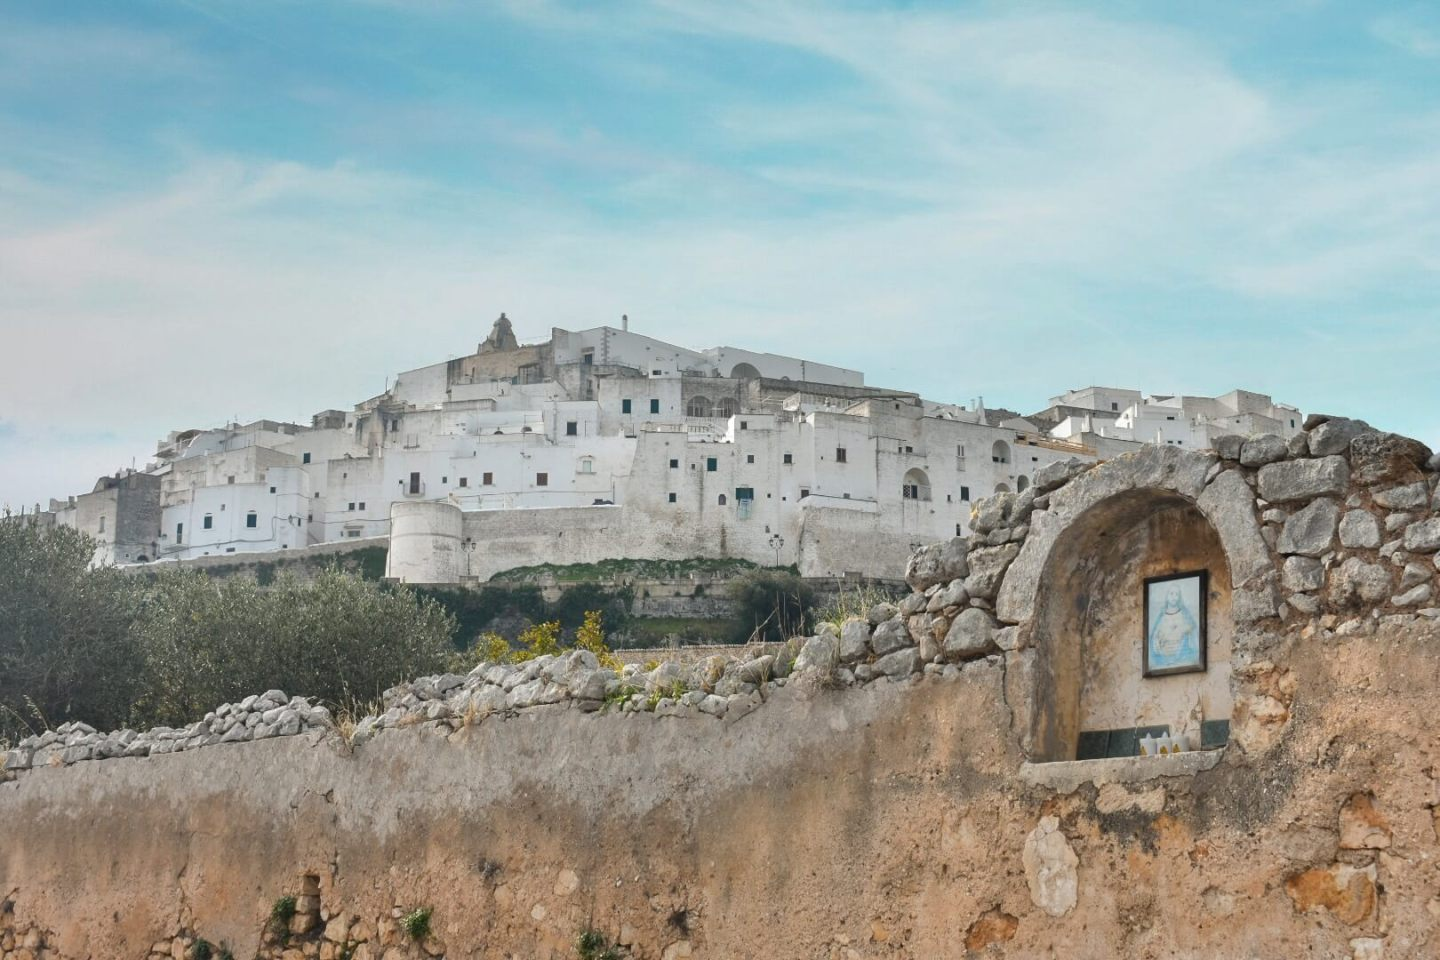 A view of Ostuni from a distance